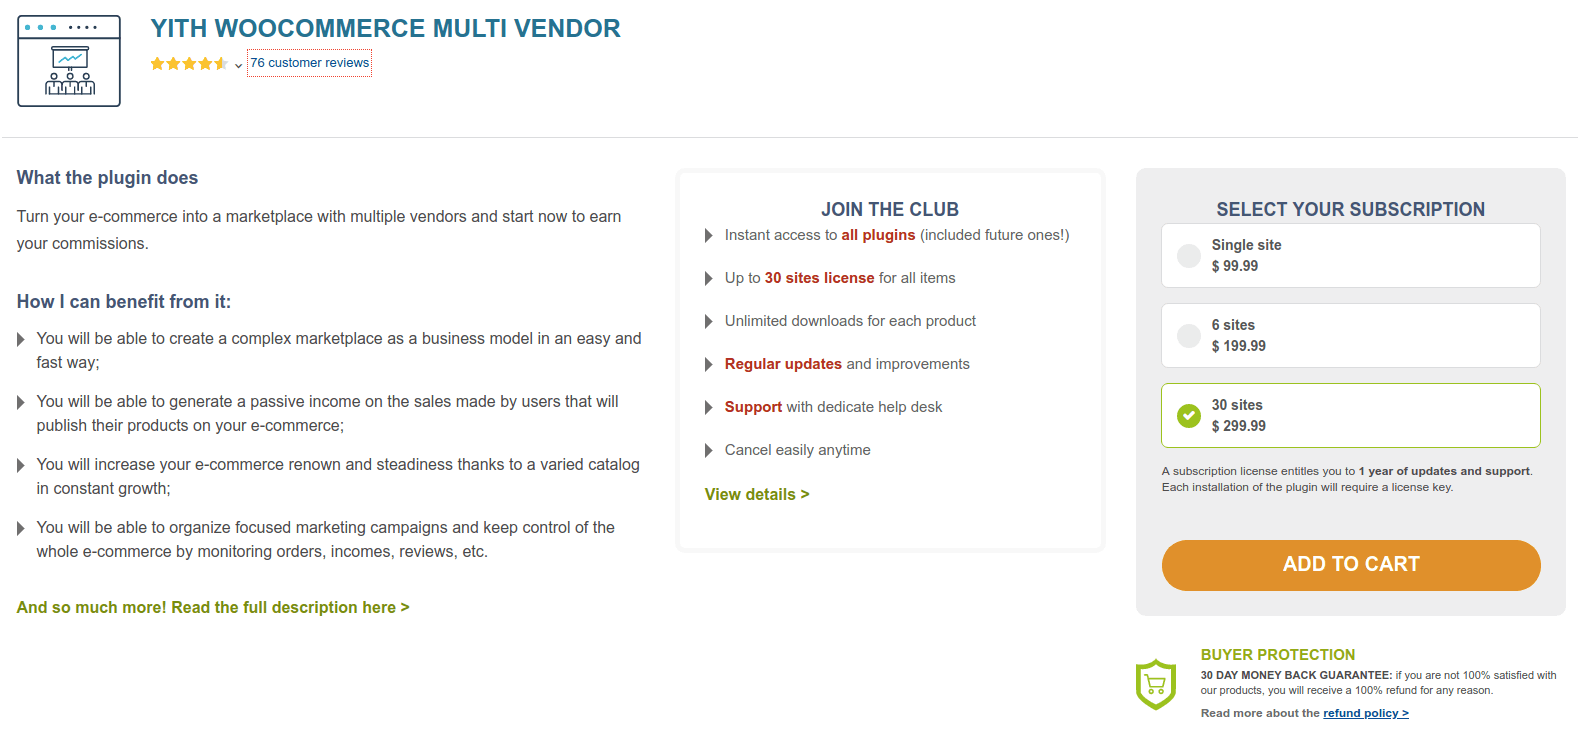 YITH WooCommerce Multi Vendor WooCommerce Multi Vendor Plugin